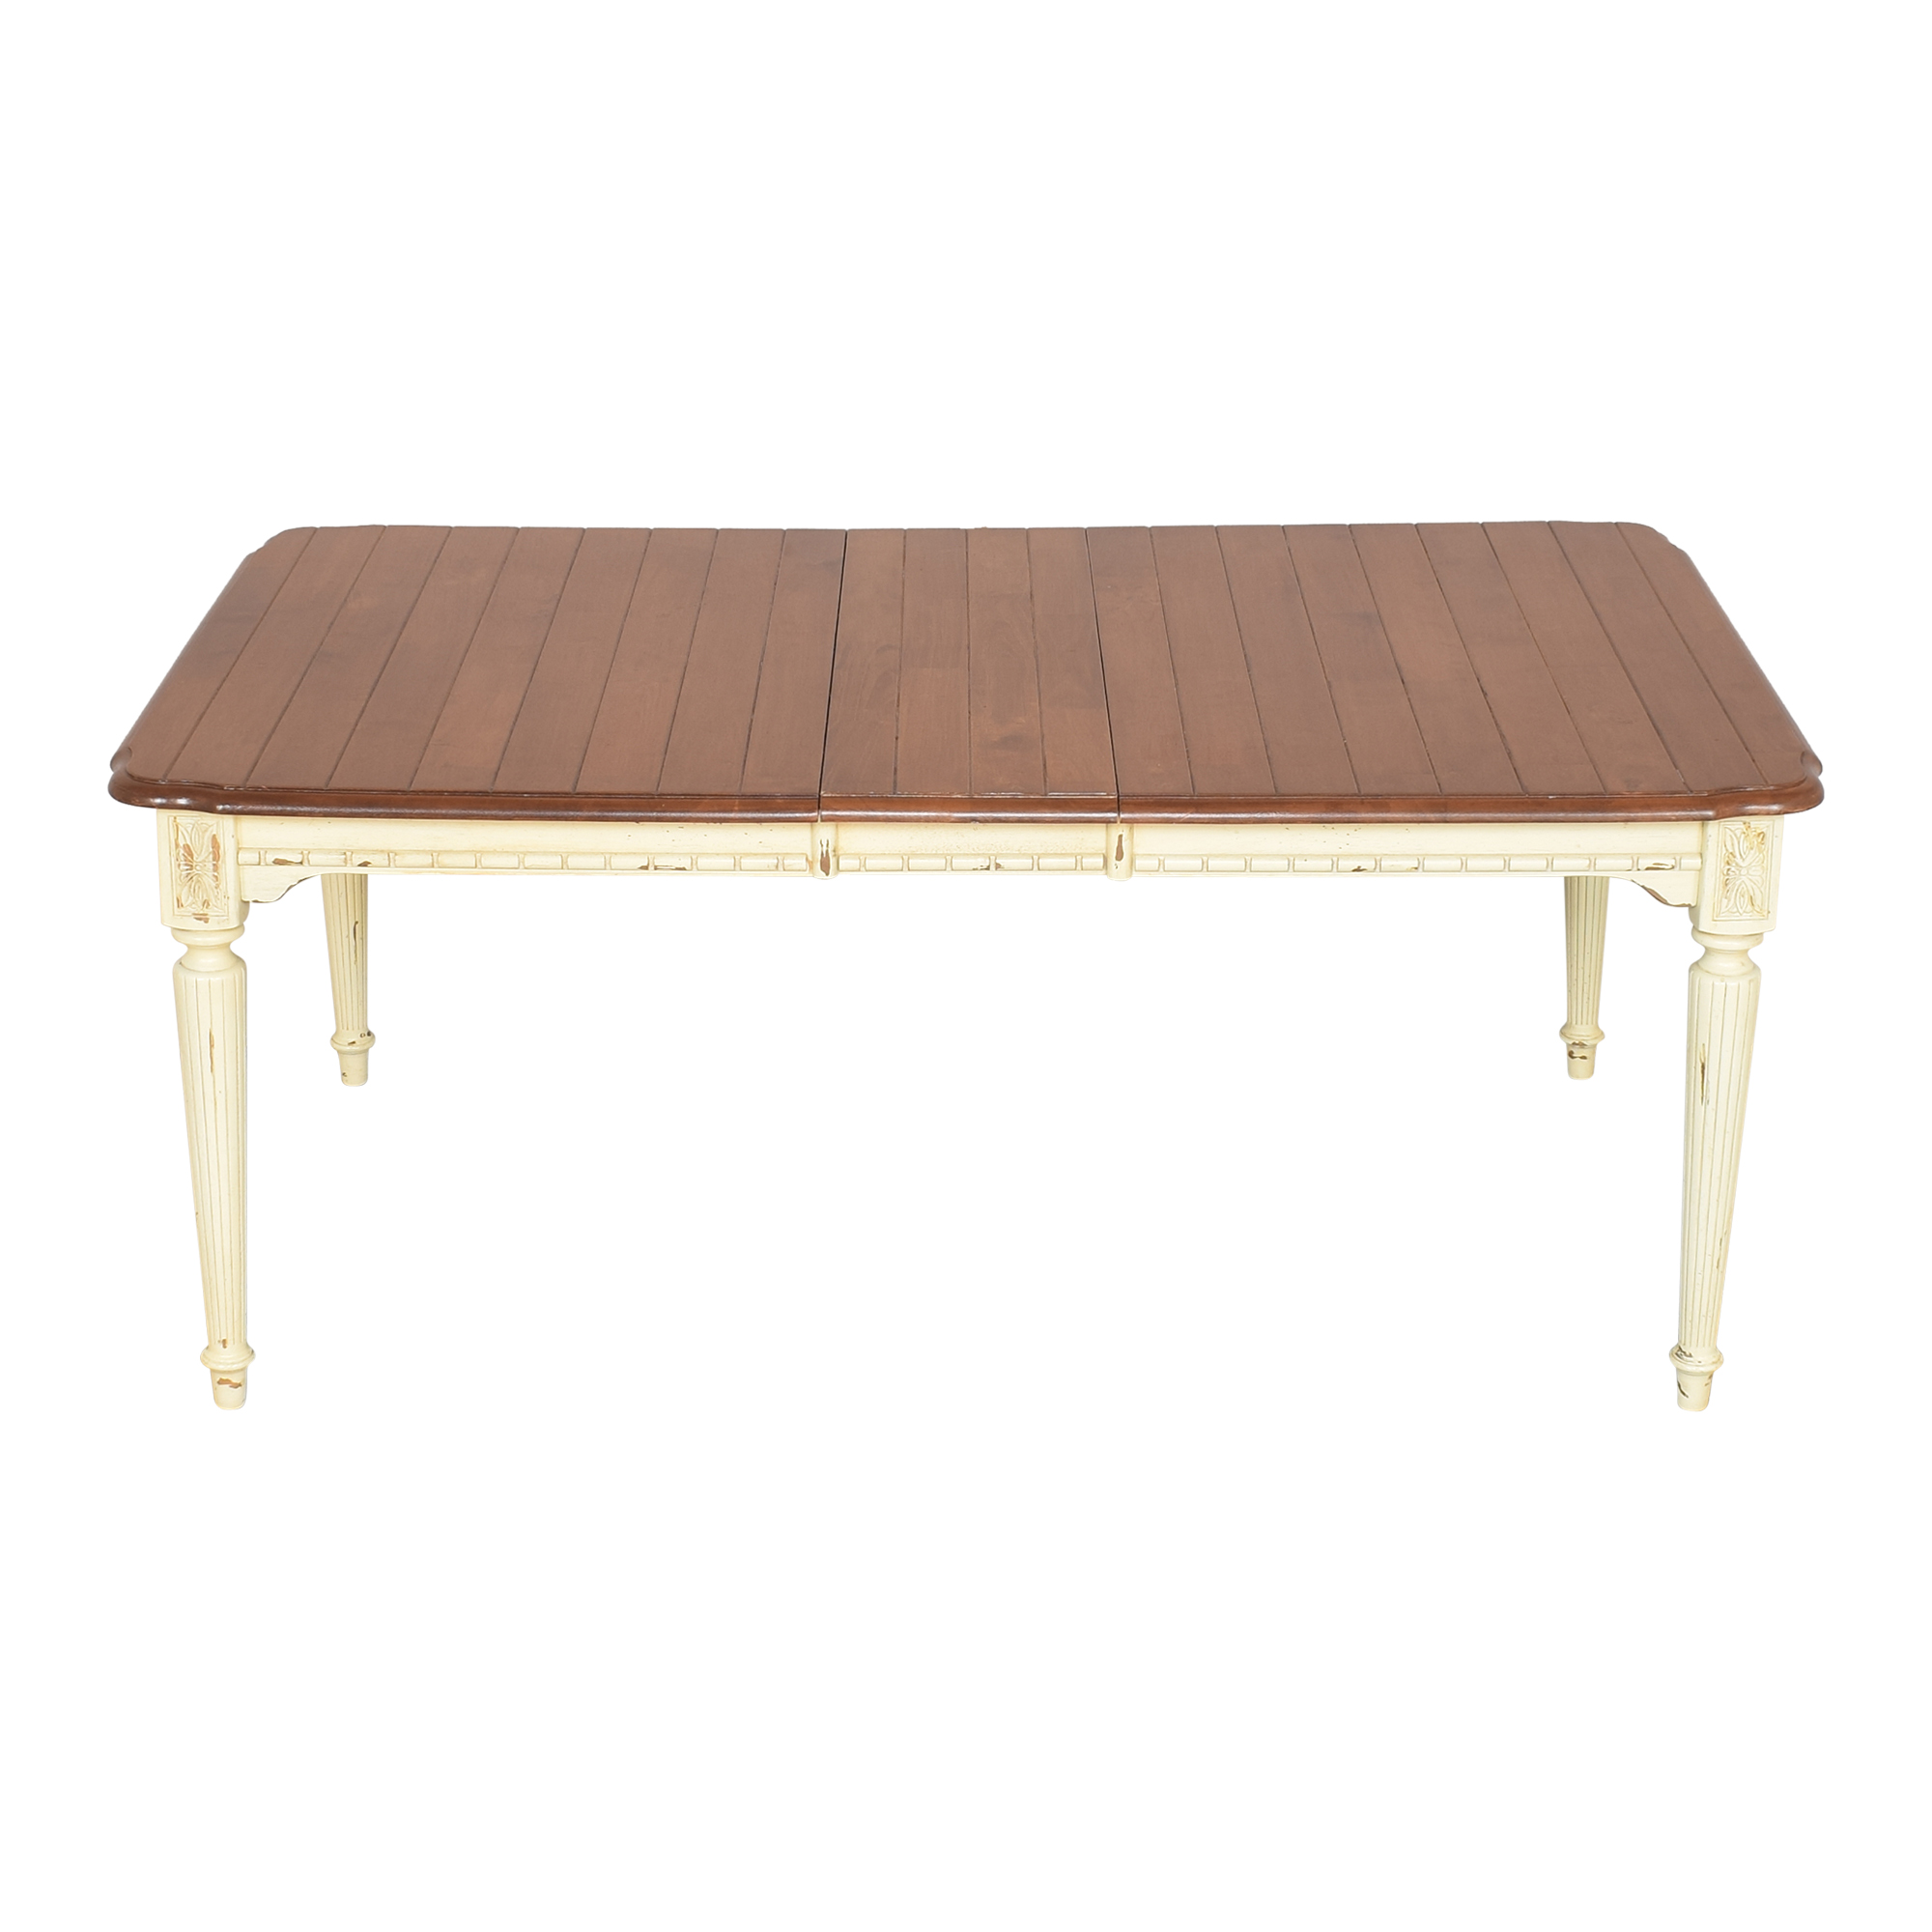 Rustic Extendable Dining Table price